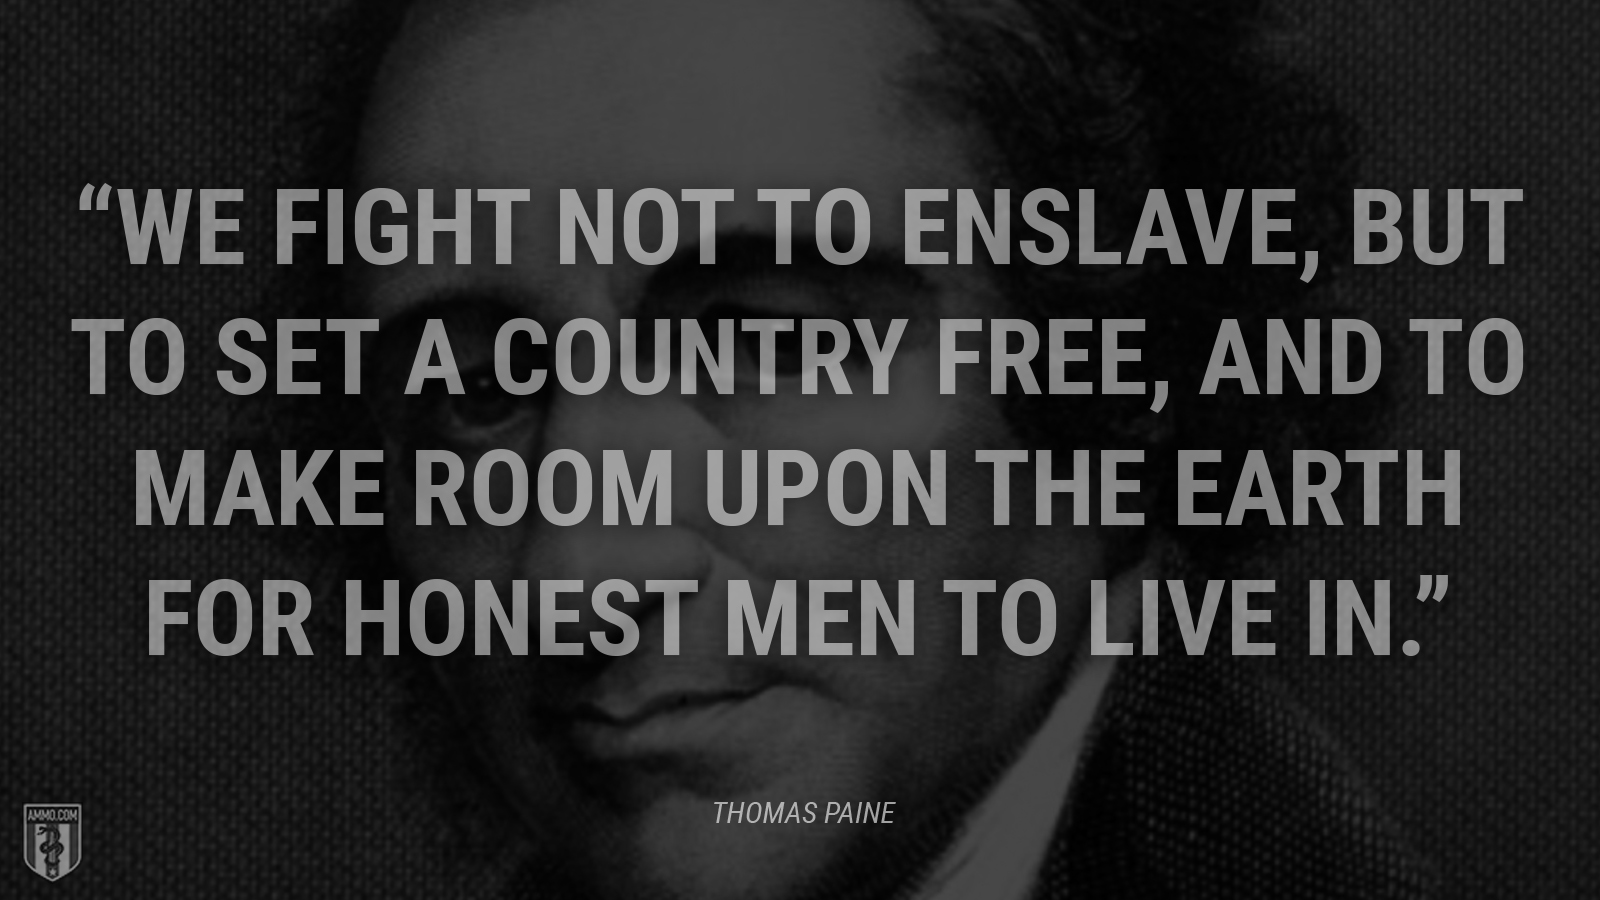 """We fight not to enslave, but to set a country free, and to make room upon the earth for honest men to live in."" - Thomas Paine"